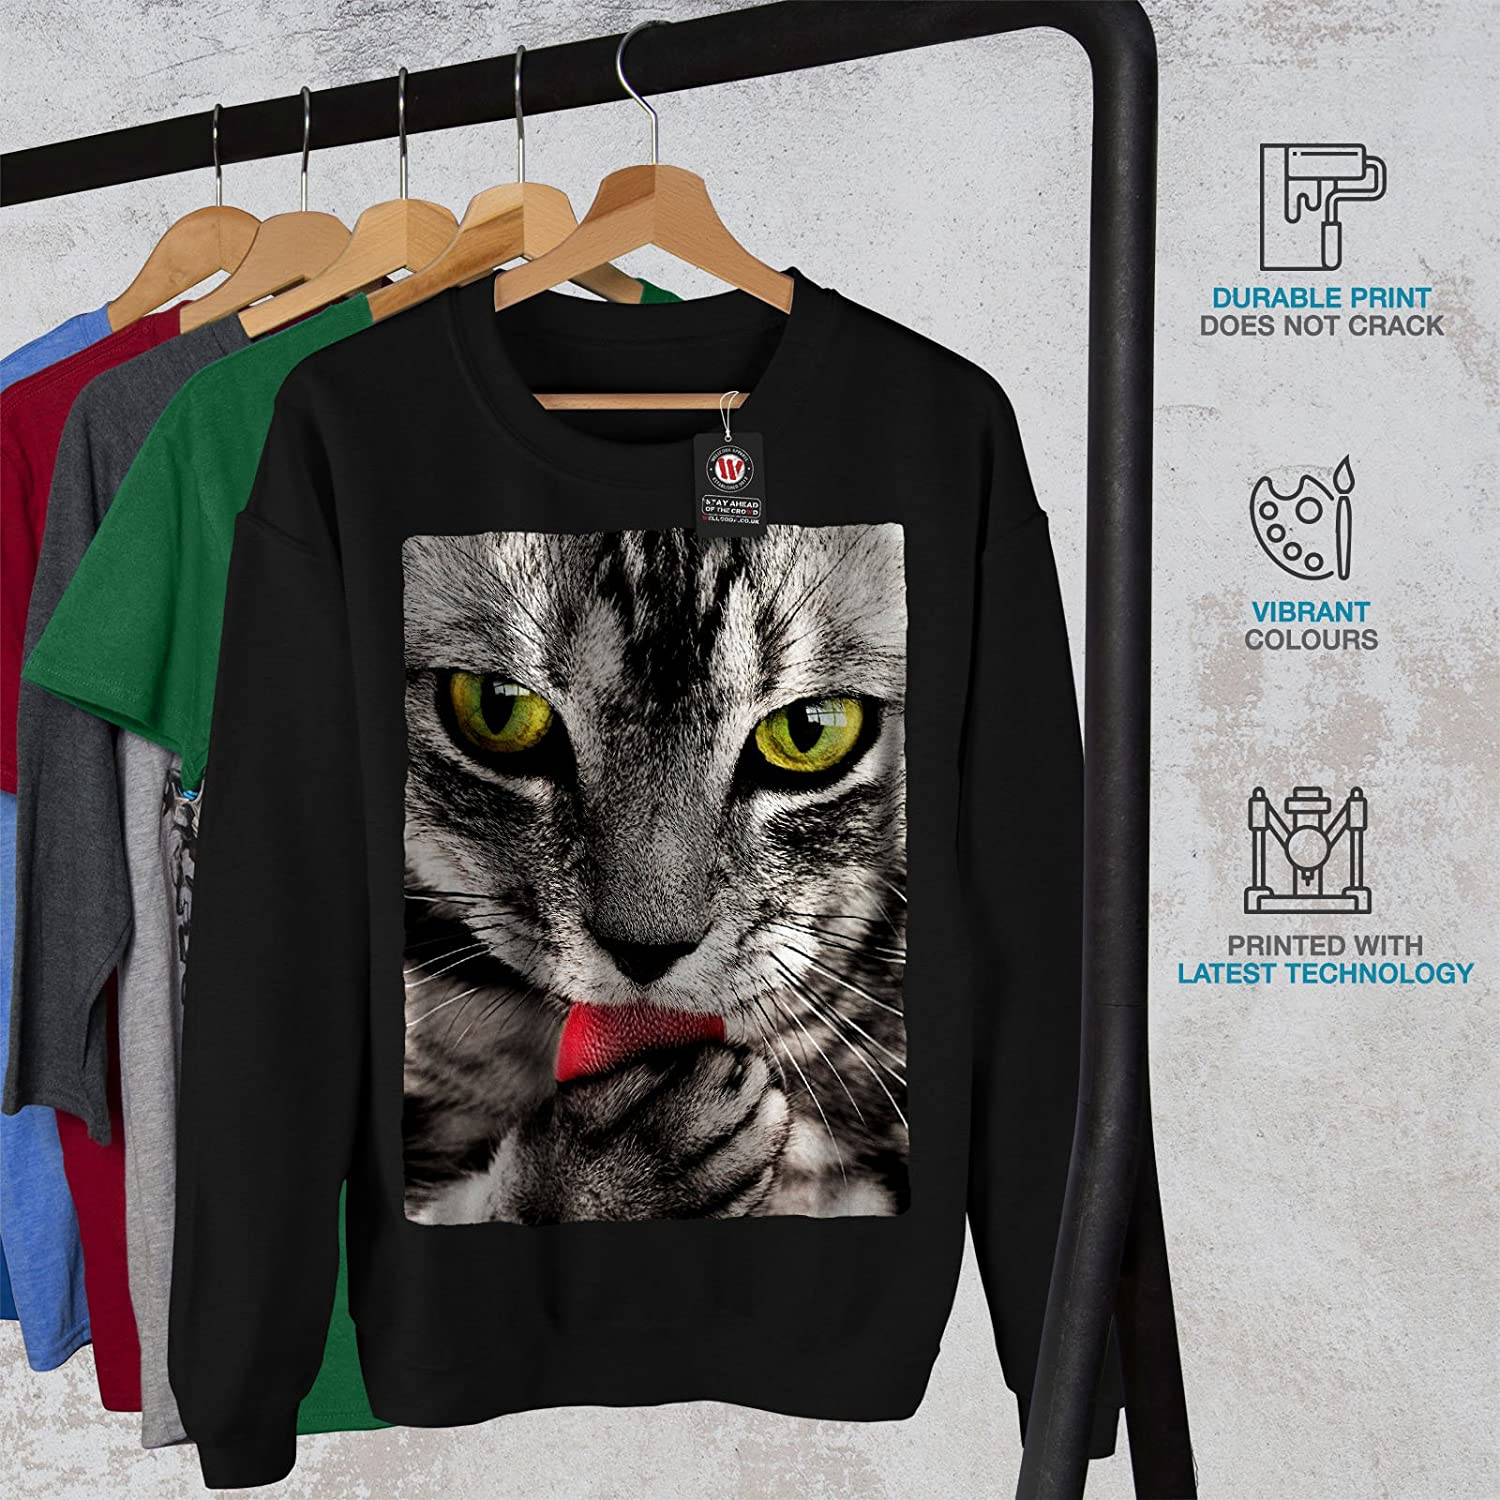 wellcoda Cat Lick Paw Cute Animal Mens Sweatshirt Cute Casual Jumper